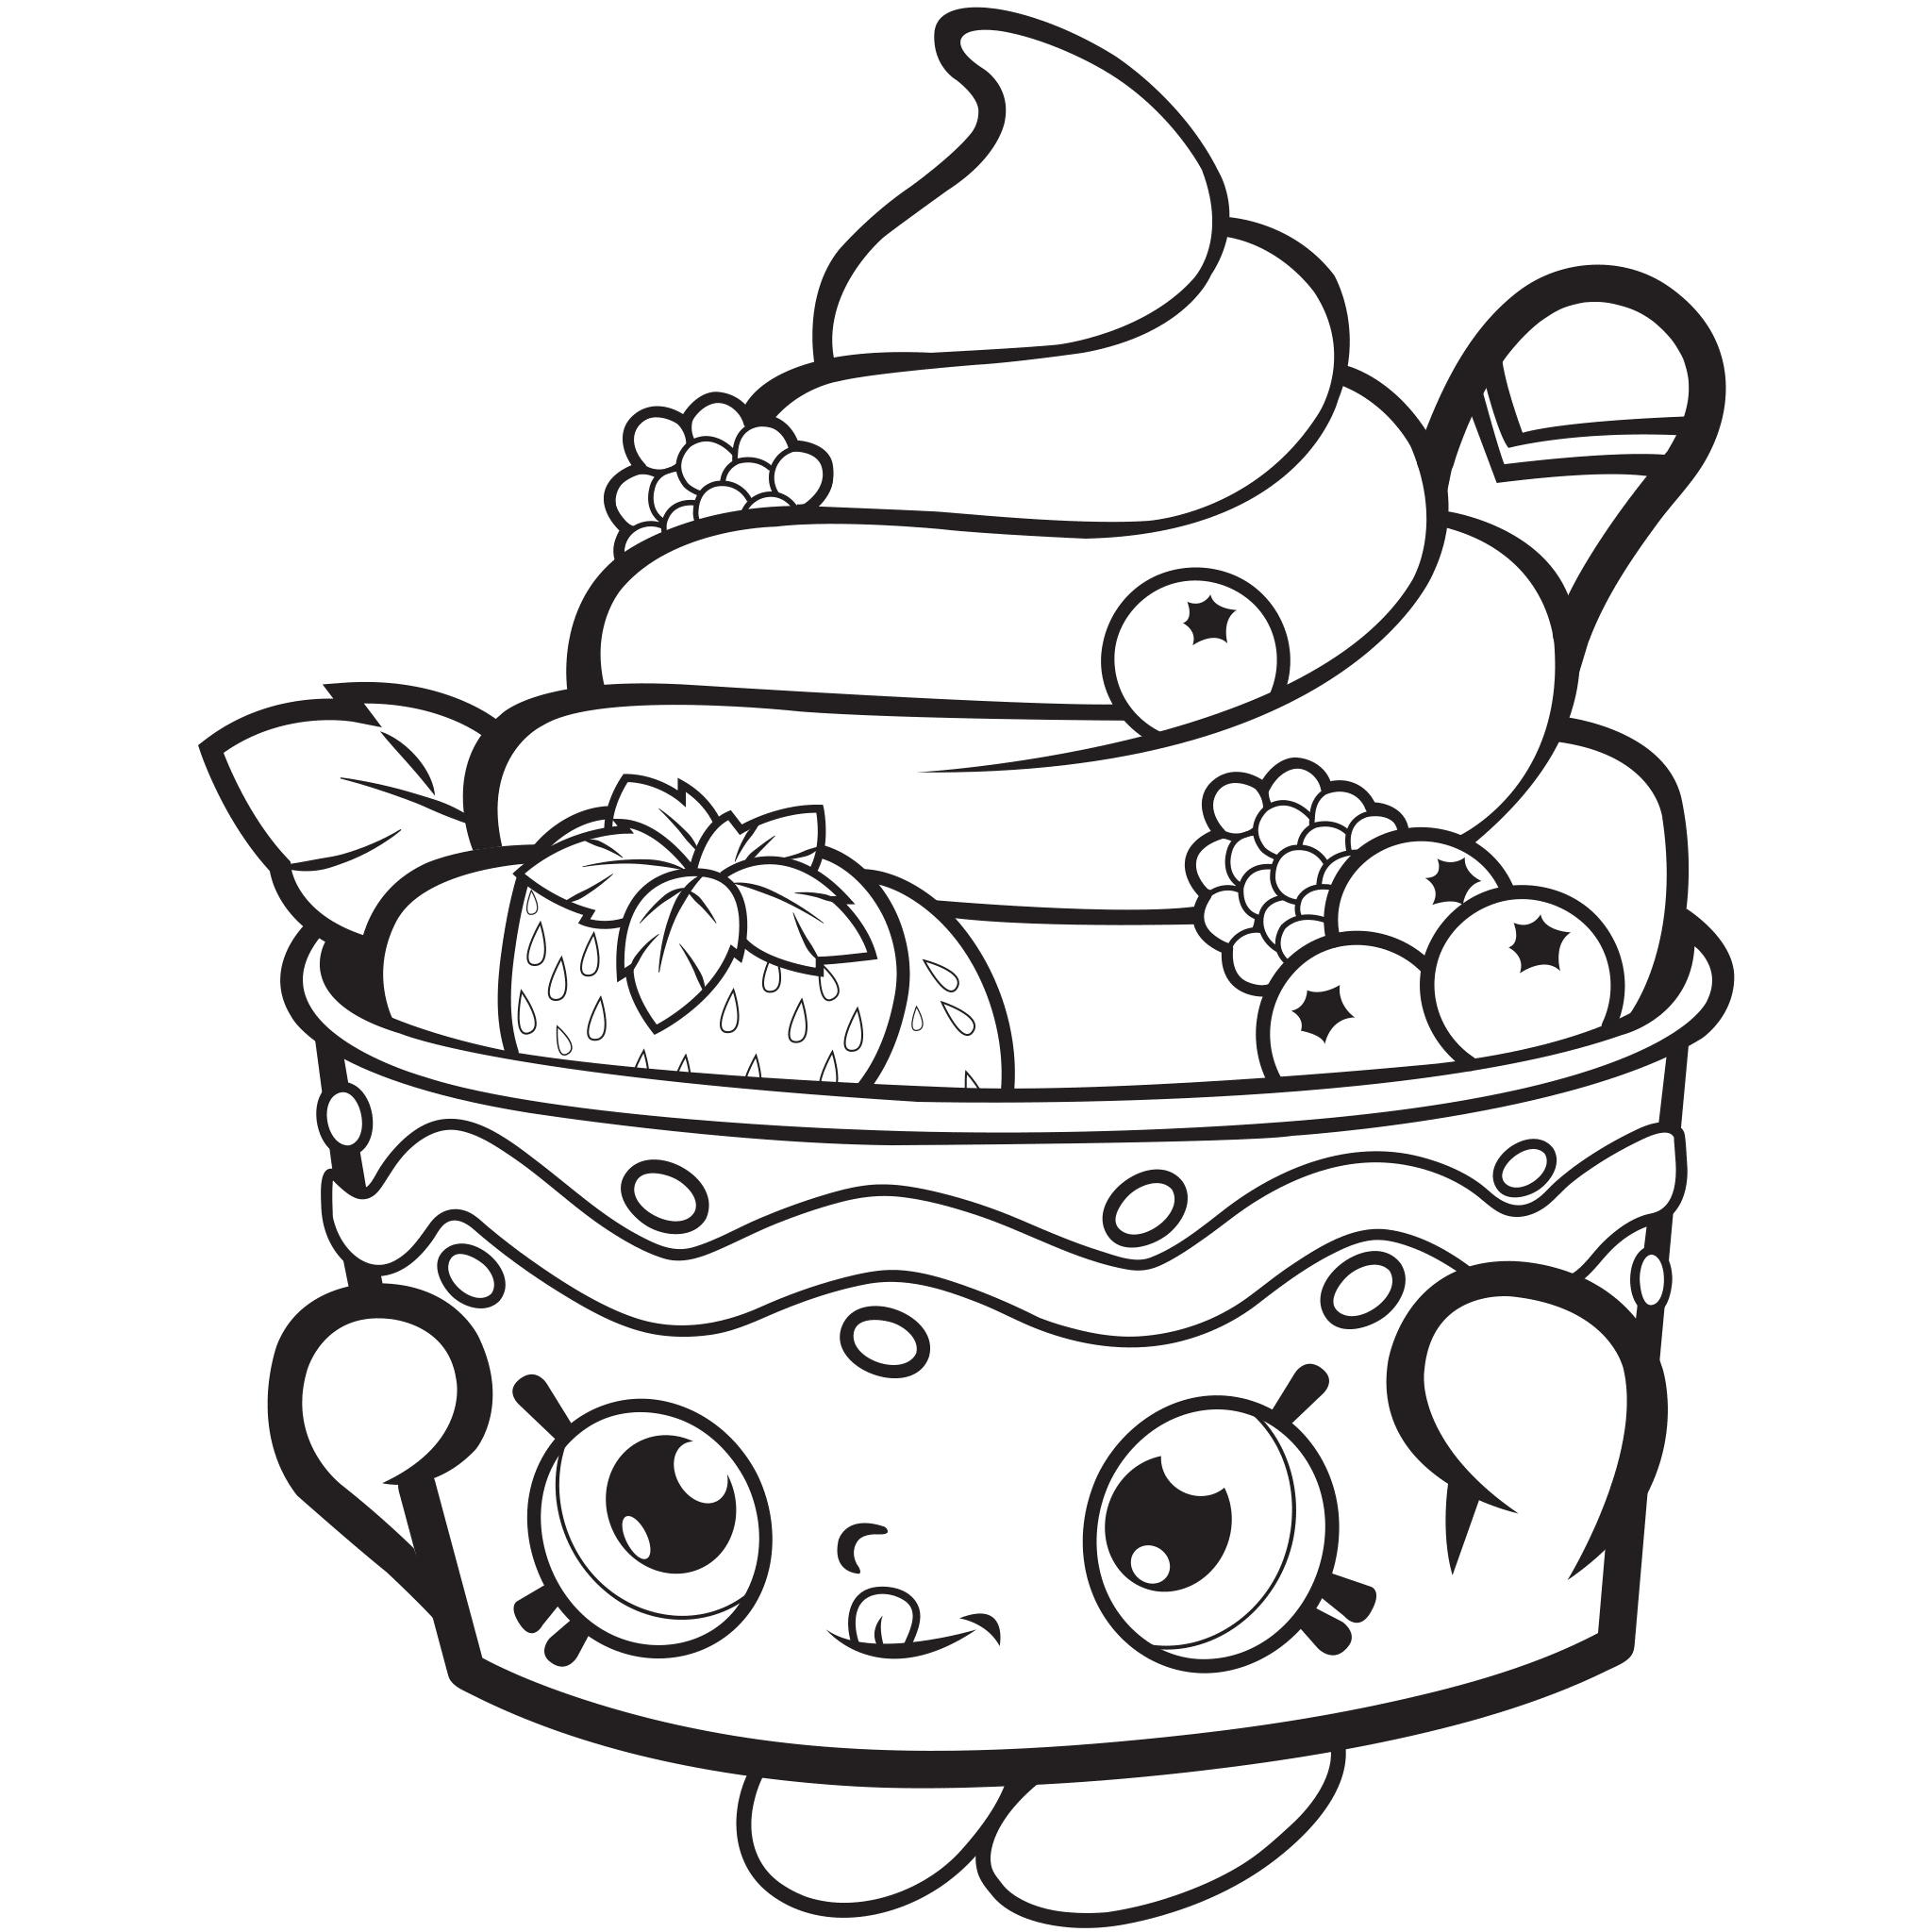 2048x2048 Shopkins Coloring Pages Le Blossom Kins Coloring Pages Best For Kids.